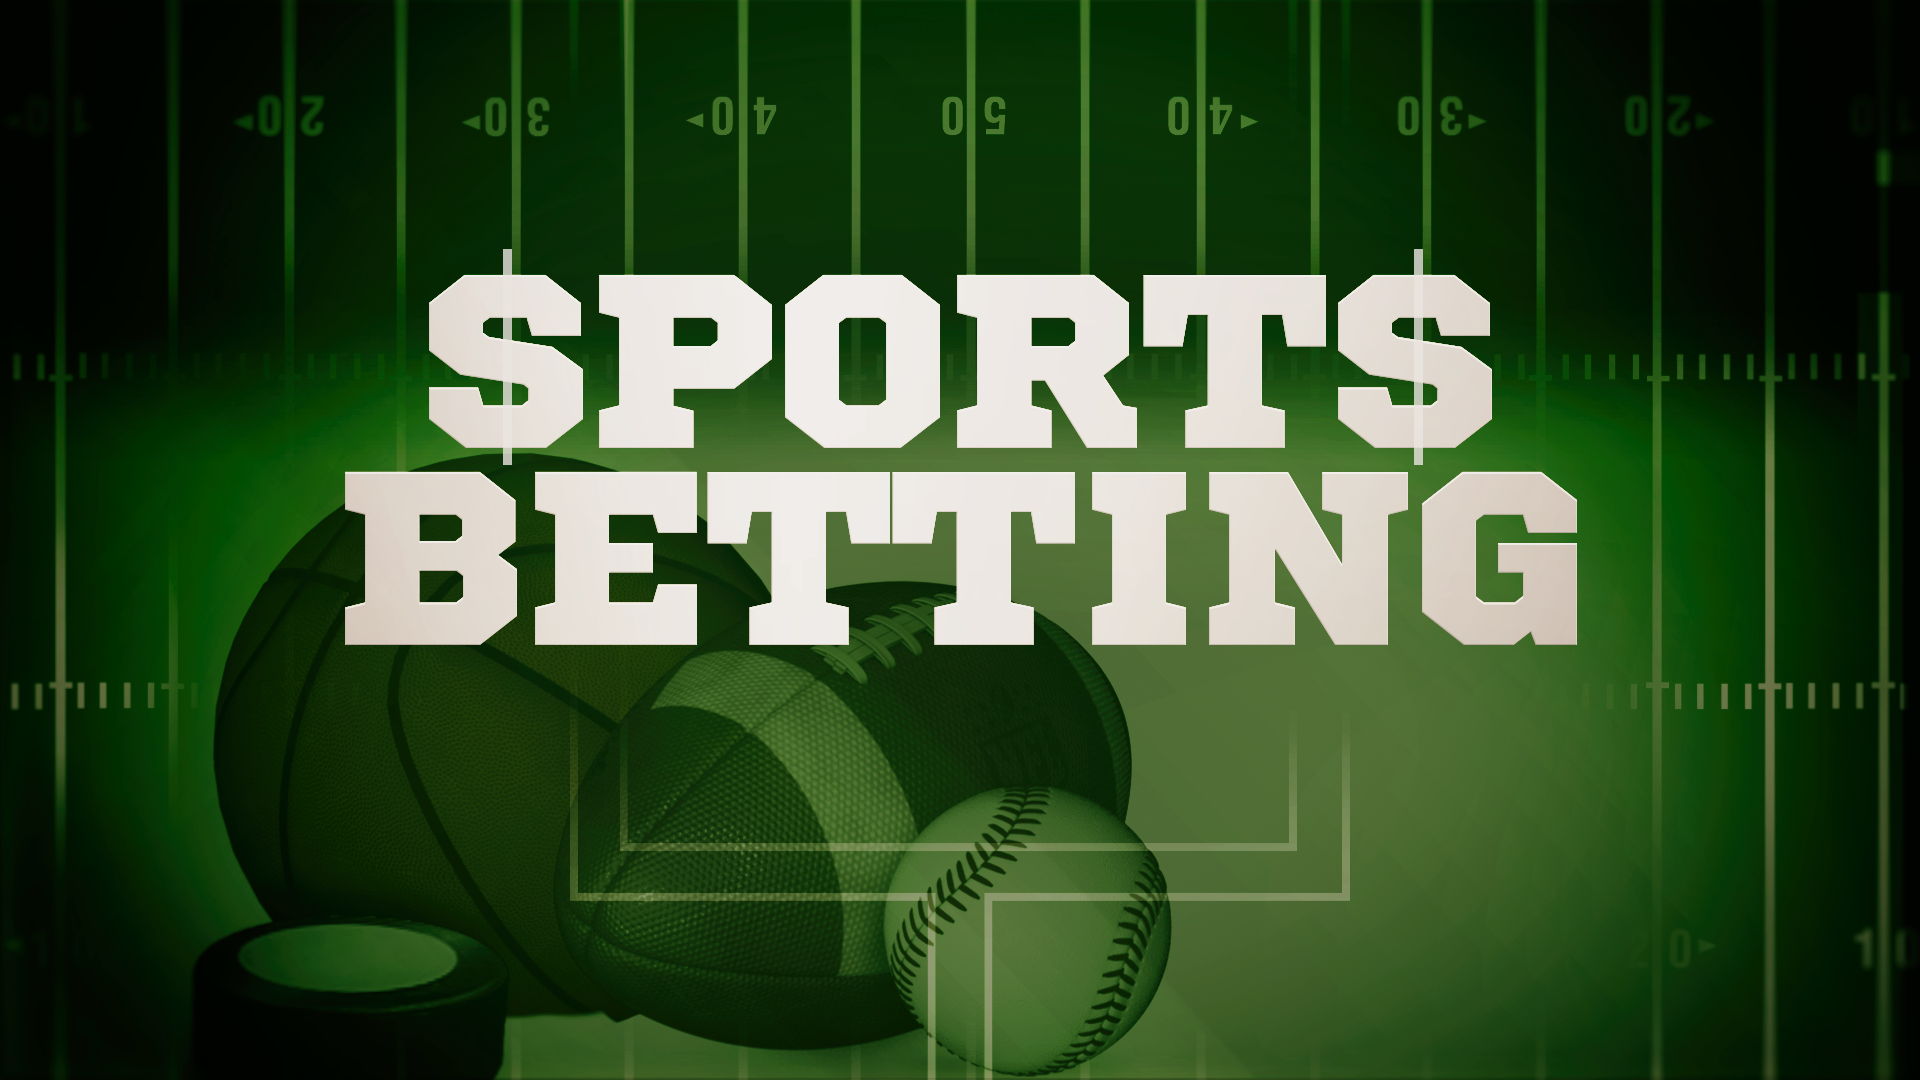 Officials say there's no timeline for when sports betting will start in  Tennessee